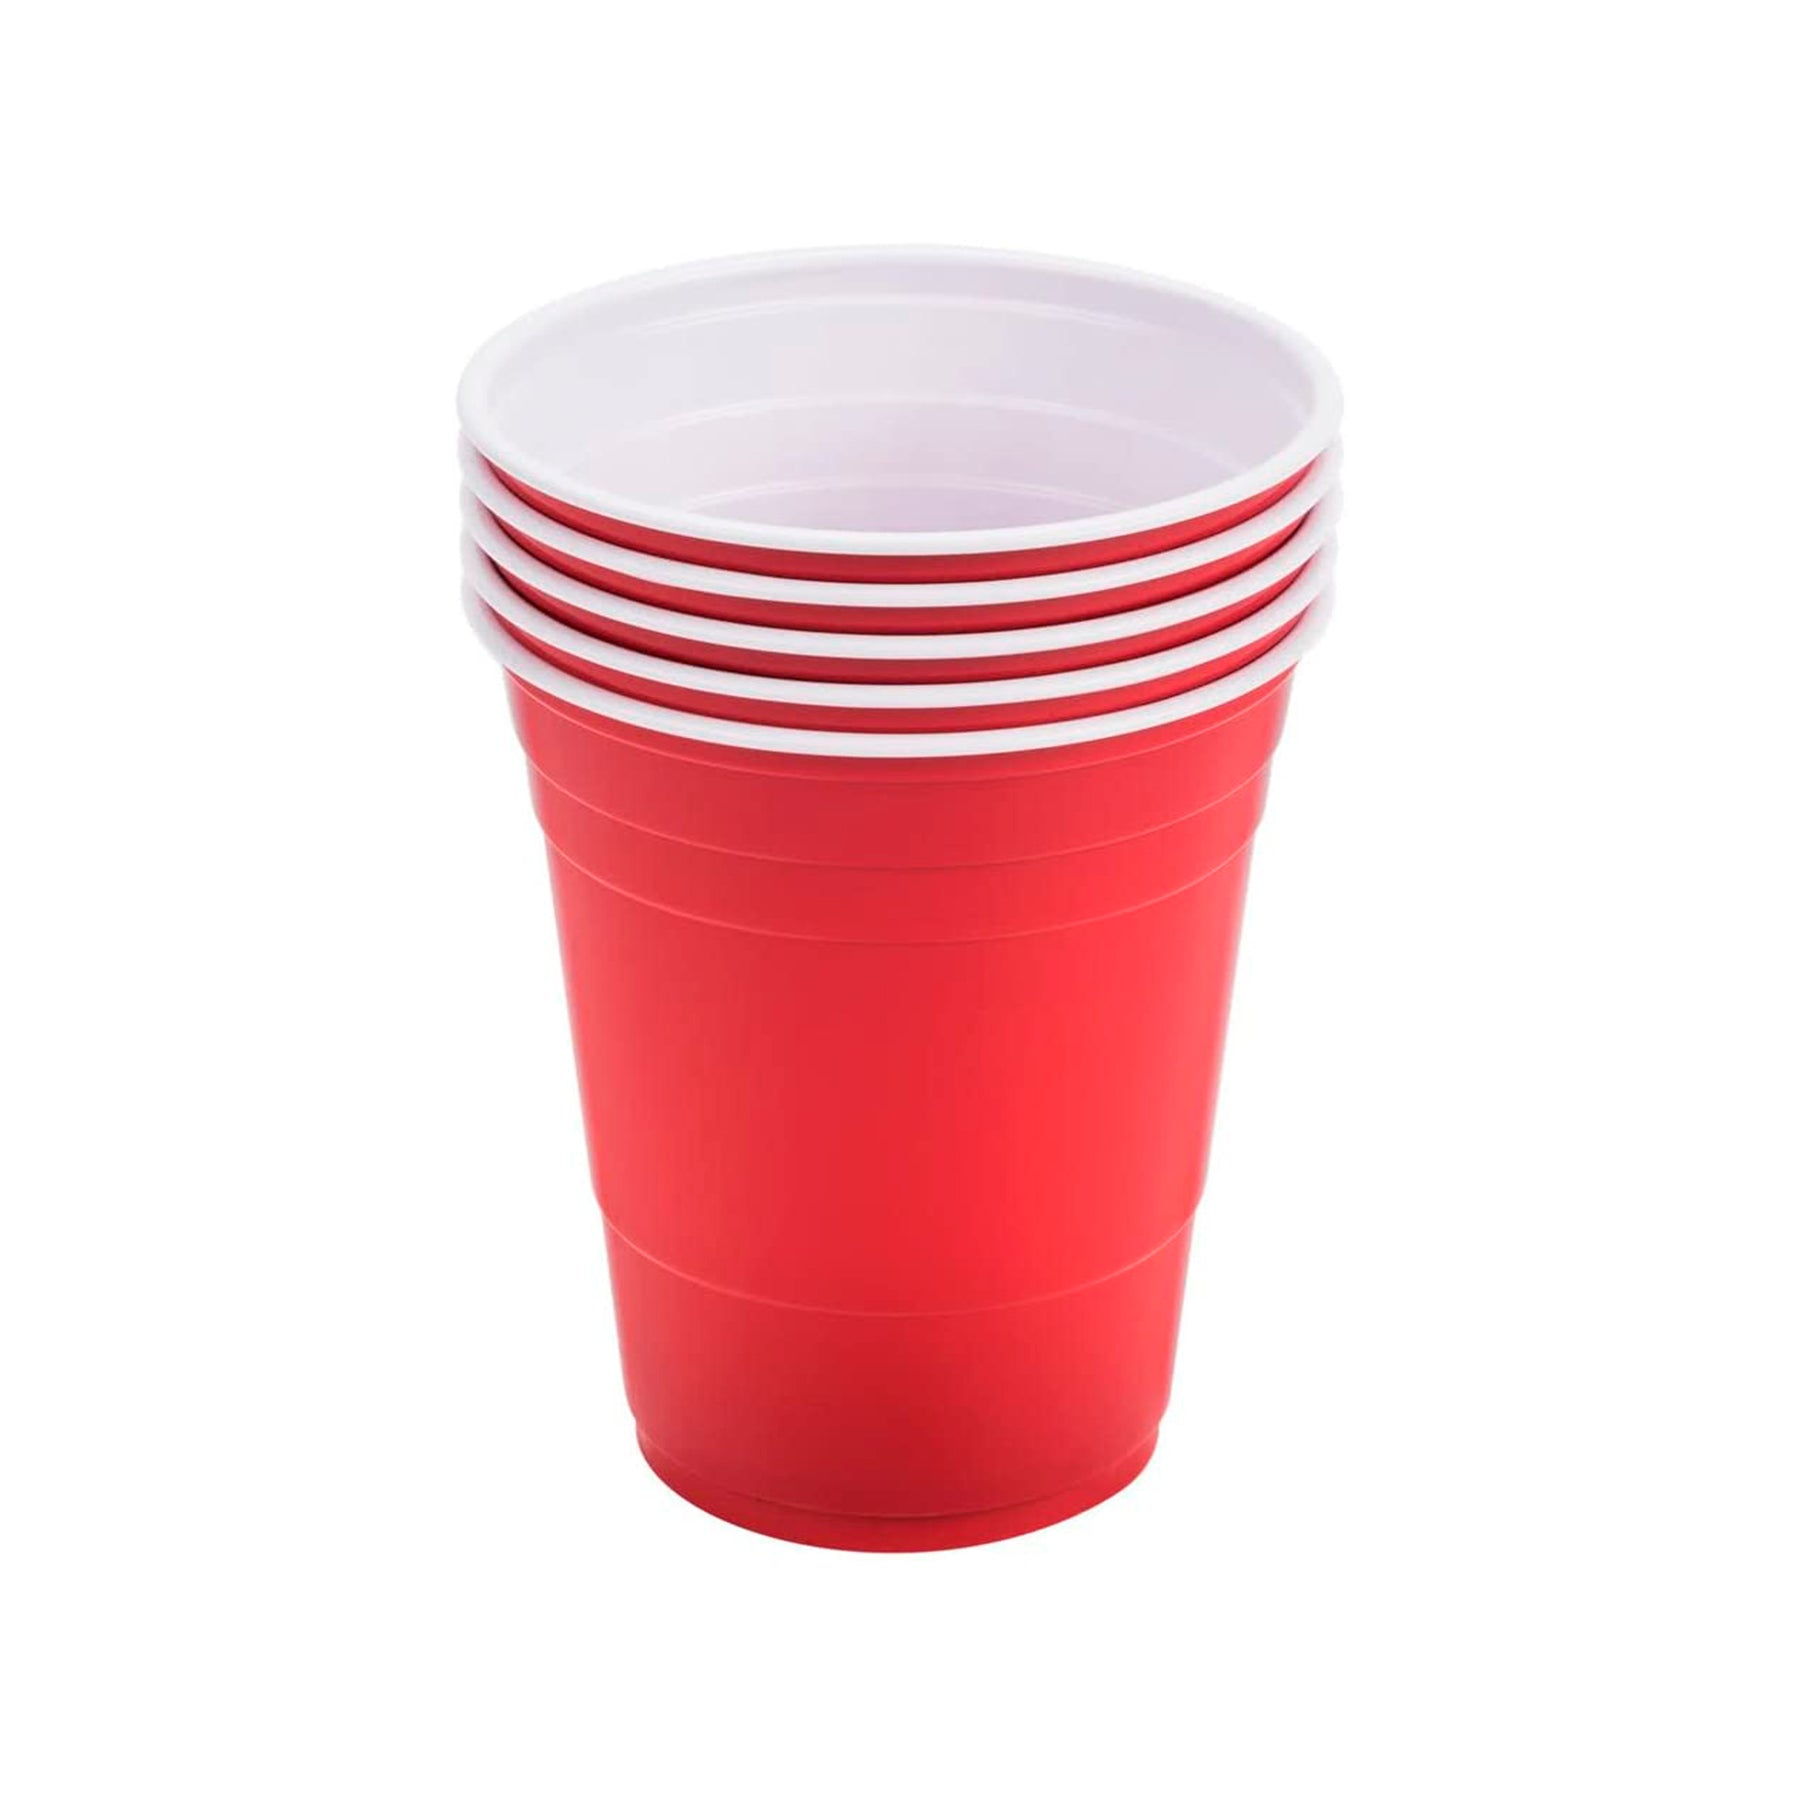 Red Plastic Cold Cup 16oz, 100 Pcs, Solo